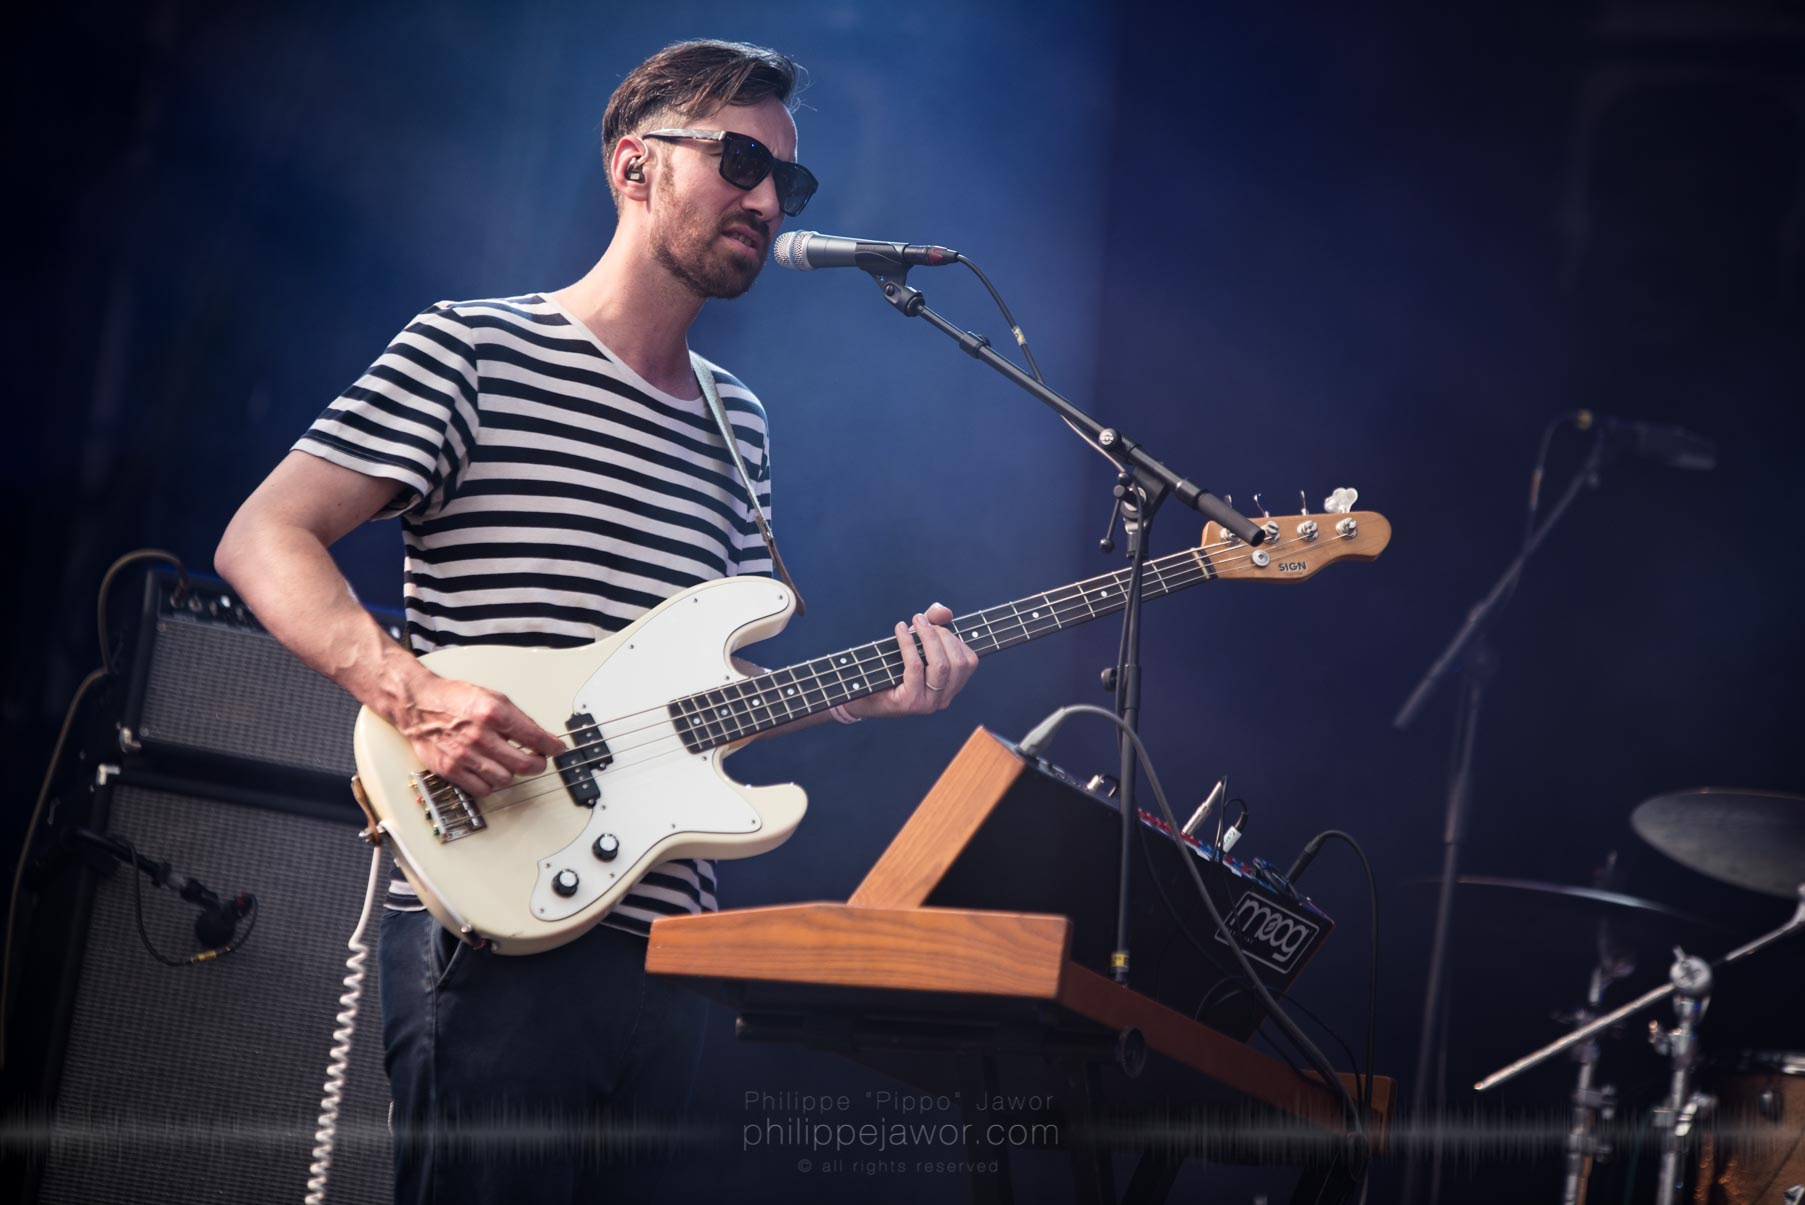 The Belgian indie pop band Girls in Hawaii, live at Rock en Seine festival, Paris, France, August 2017.  On assignment for ZYVA Magazine All rights reserved.